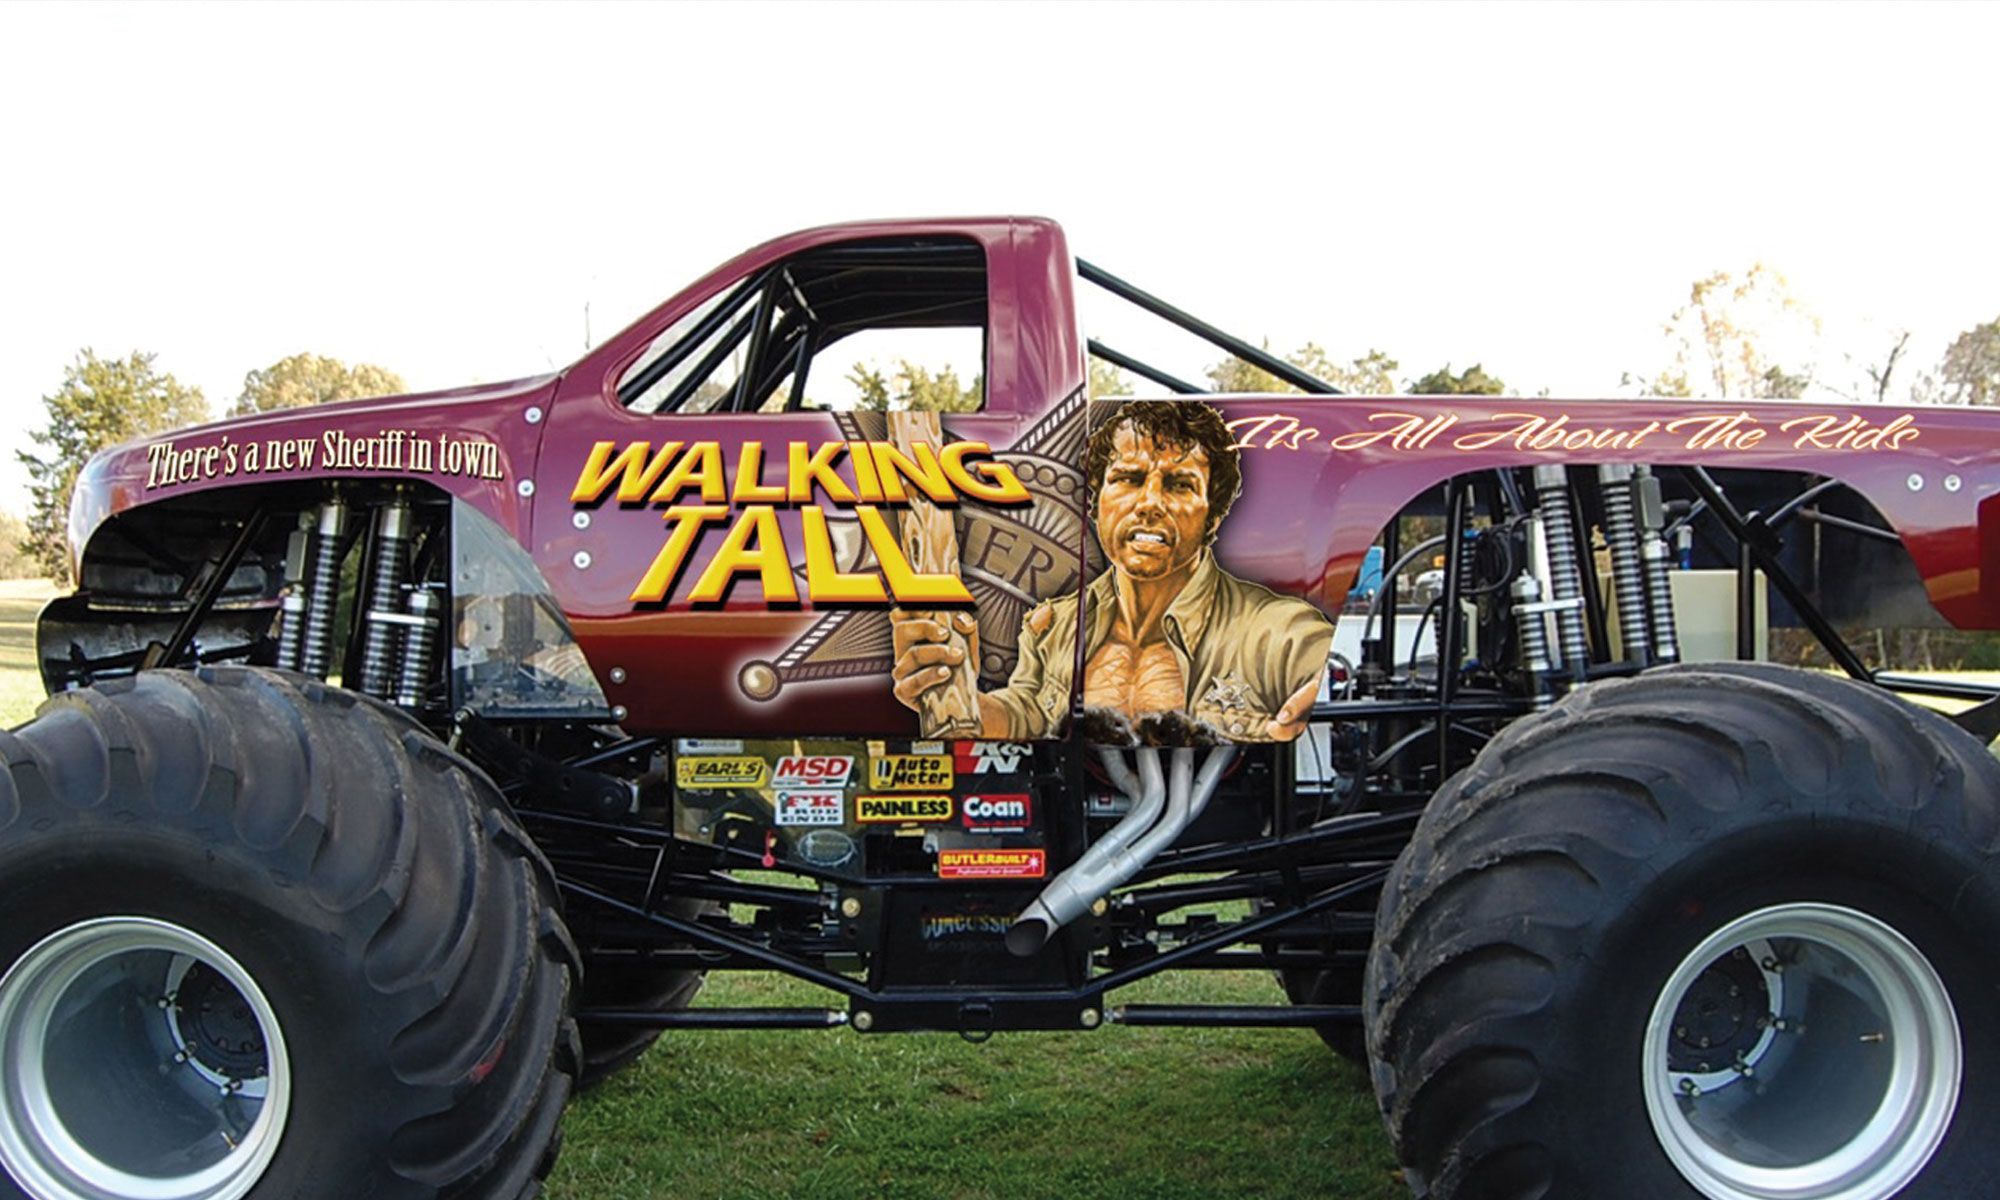 Walking Tall Monster Truck